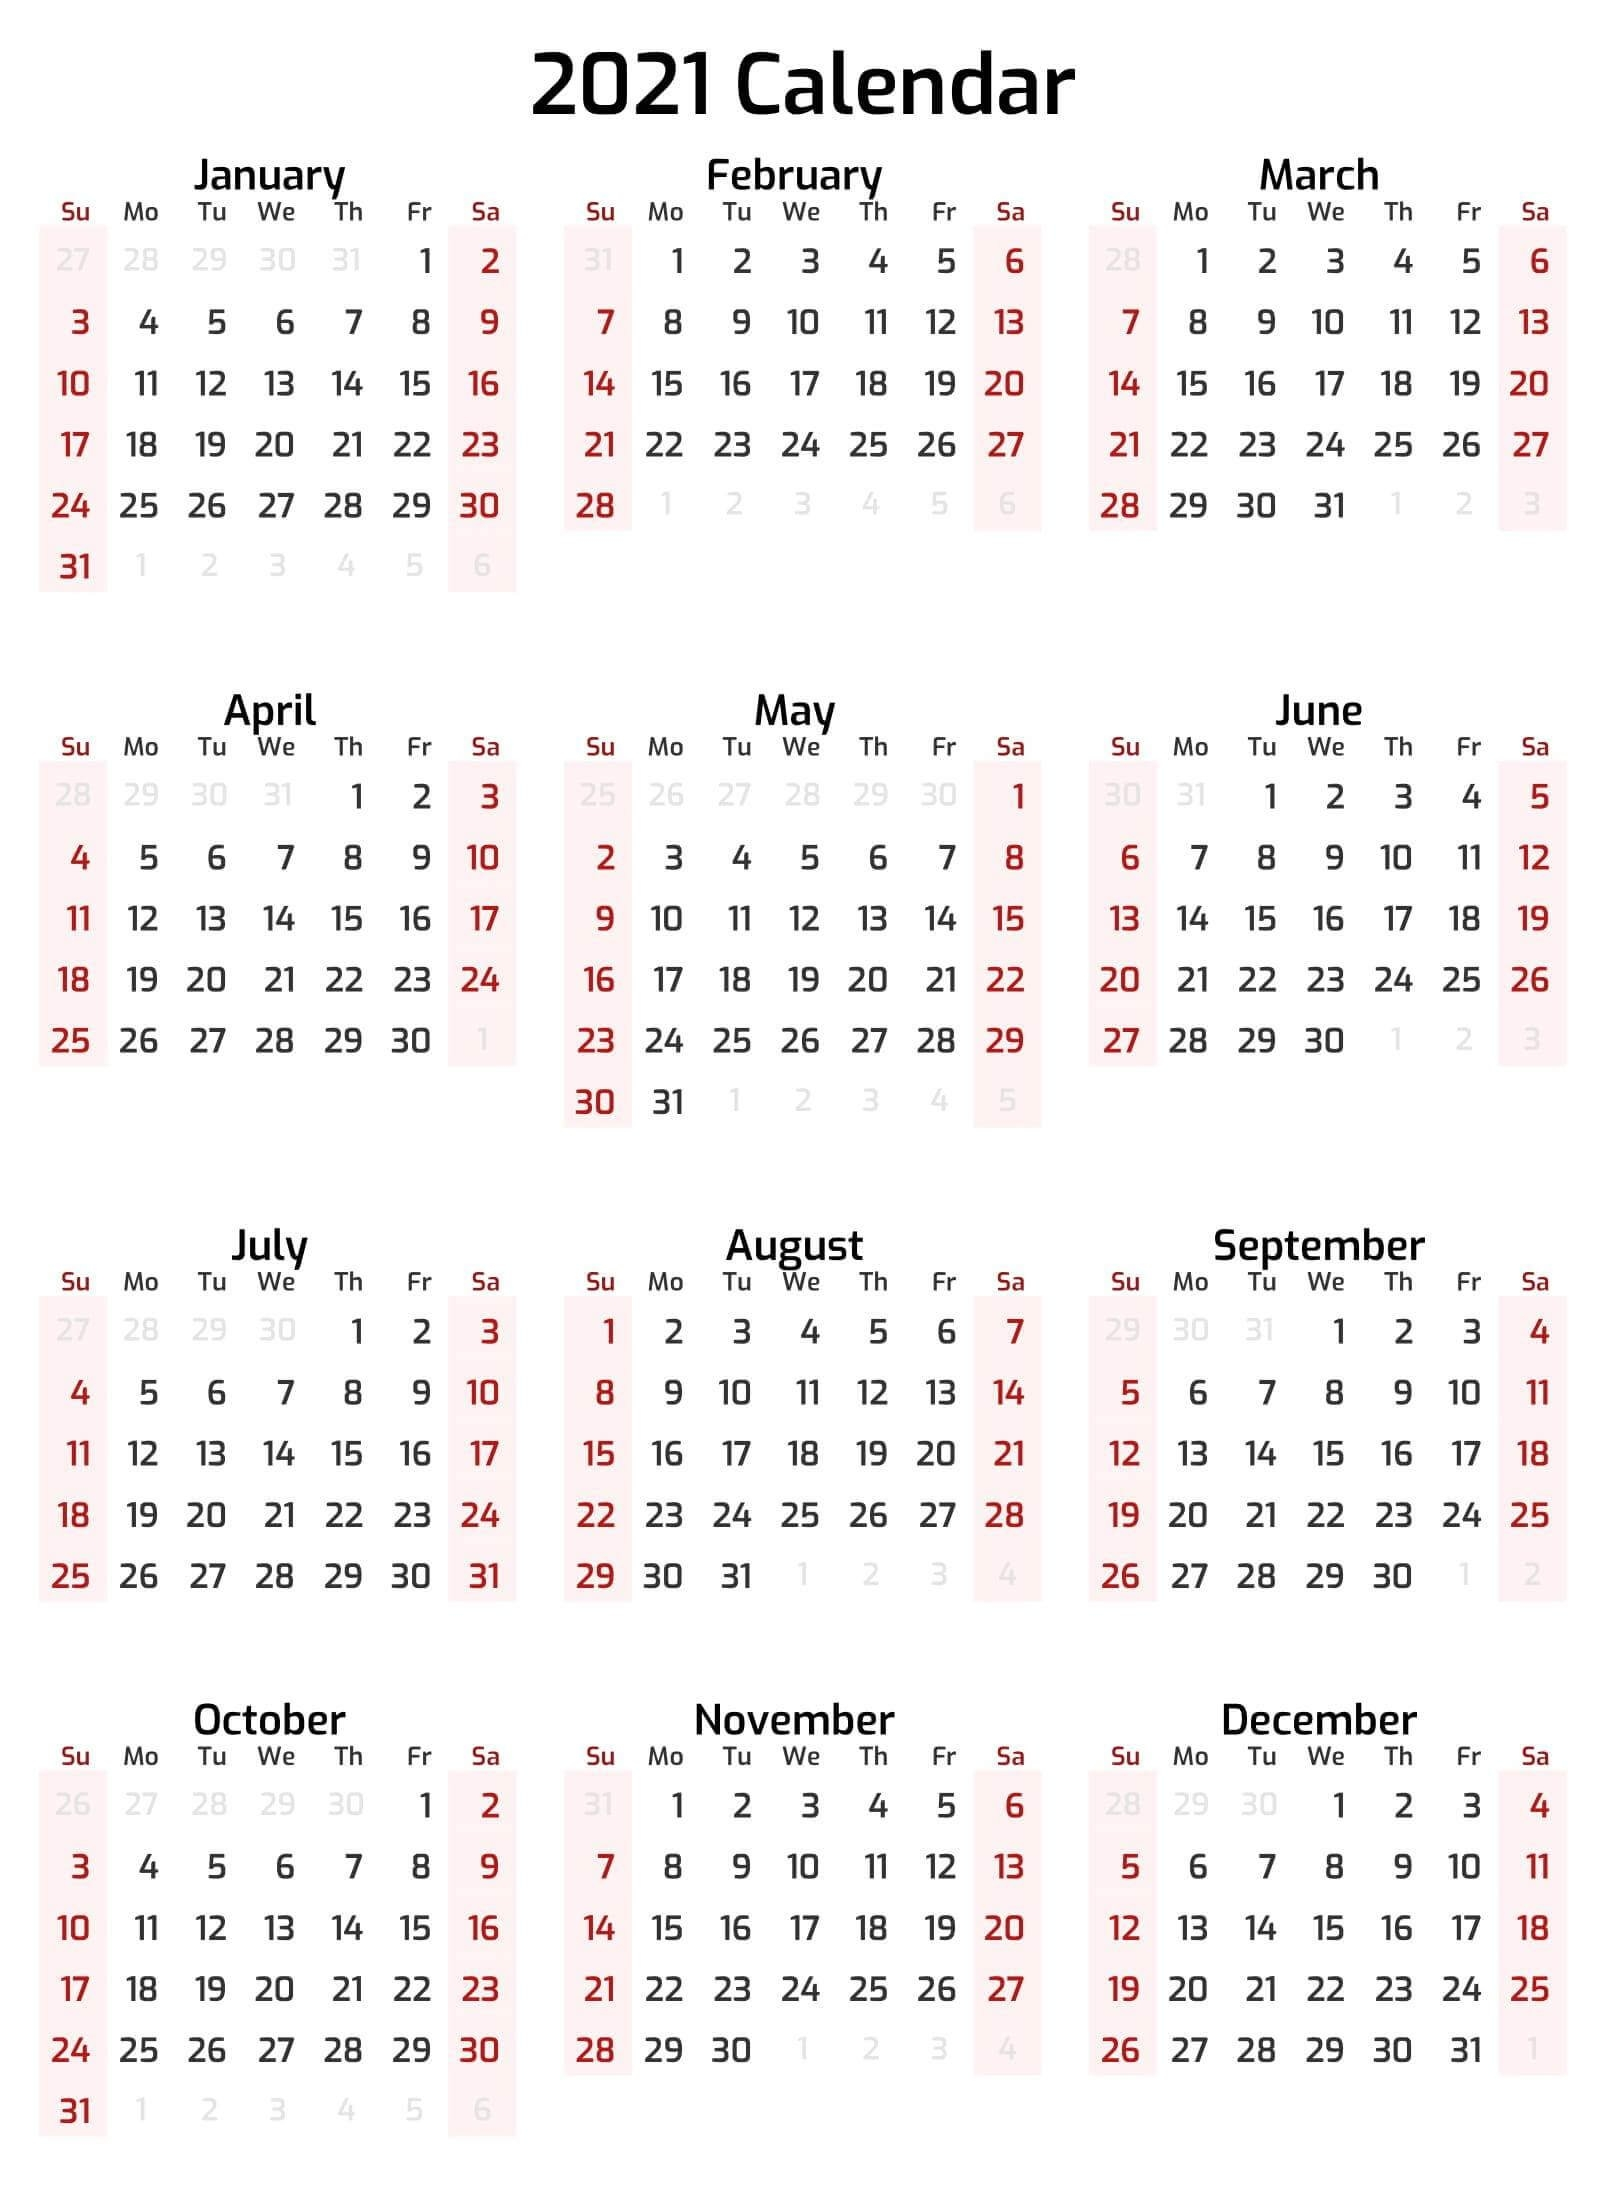 Full Year Printable Calendar 2021 With Notes | Free Printable Calendar Shop pertaining to Printable Calendars For 2021 Graphics